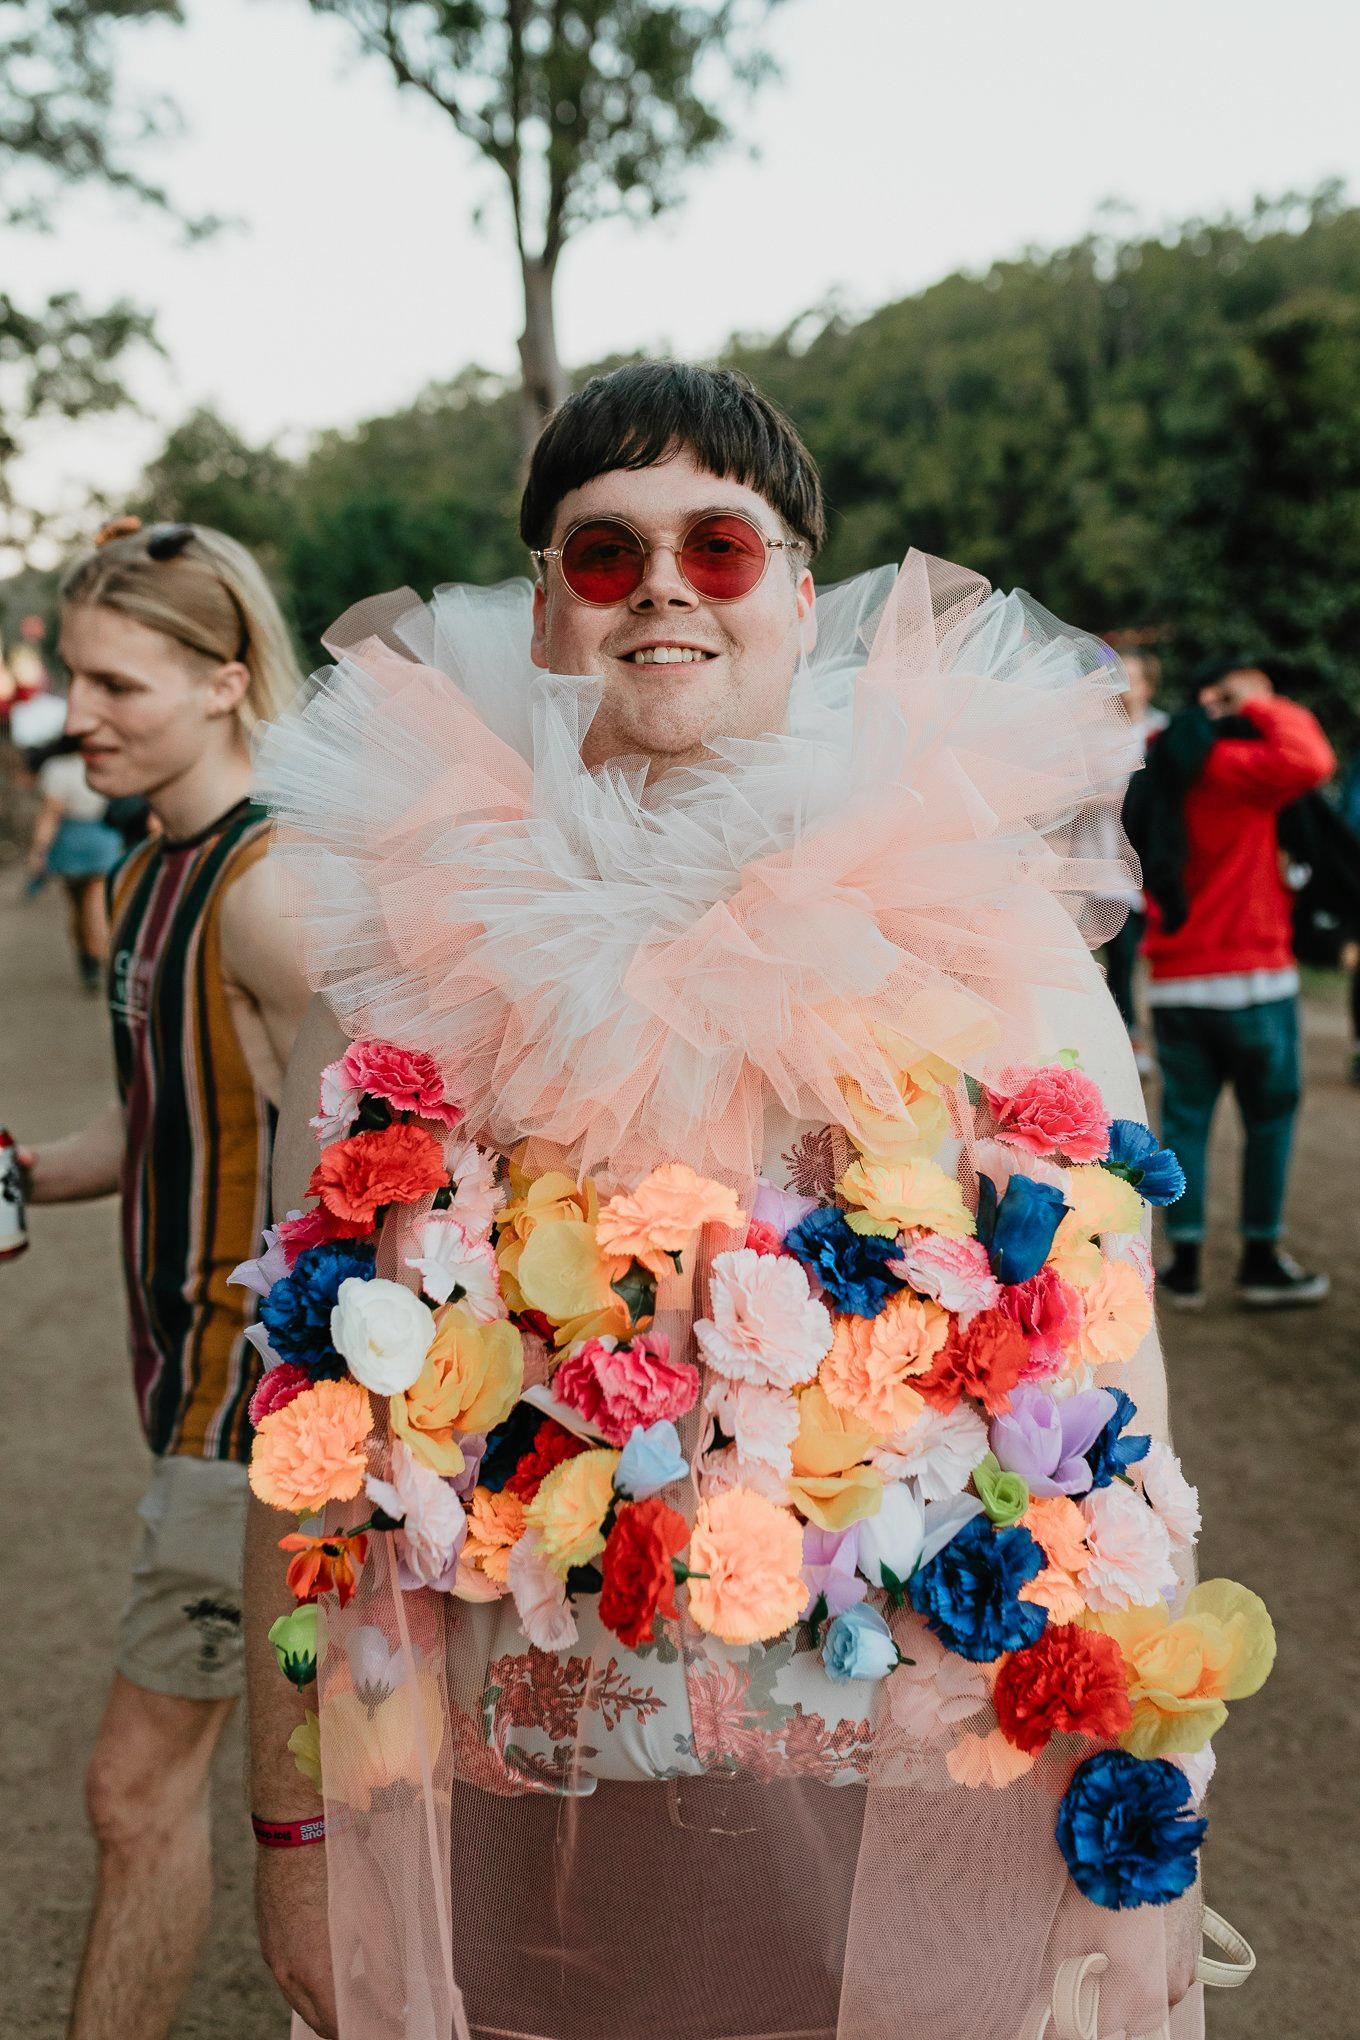 Splendour in the Grass fashions for 2019. Supplied by SITG PR.